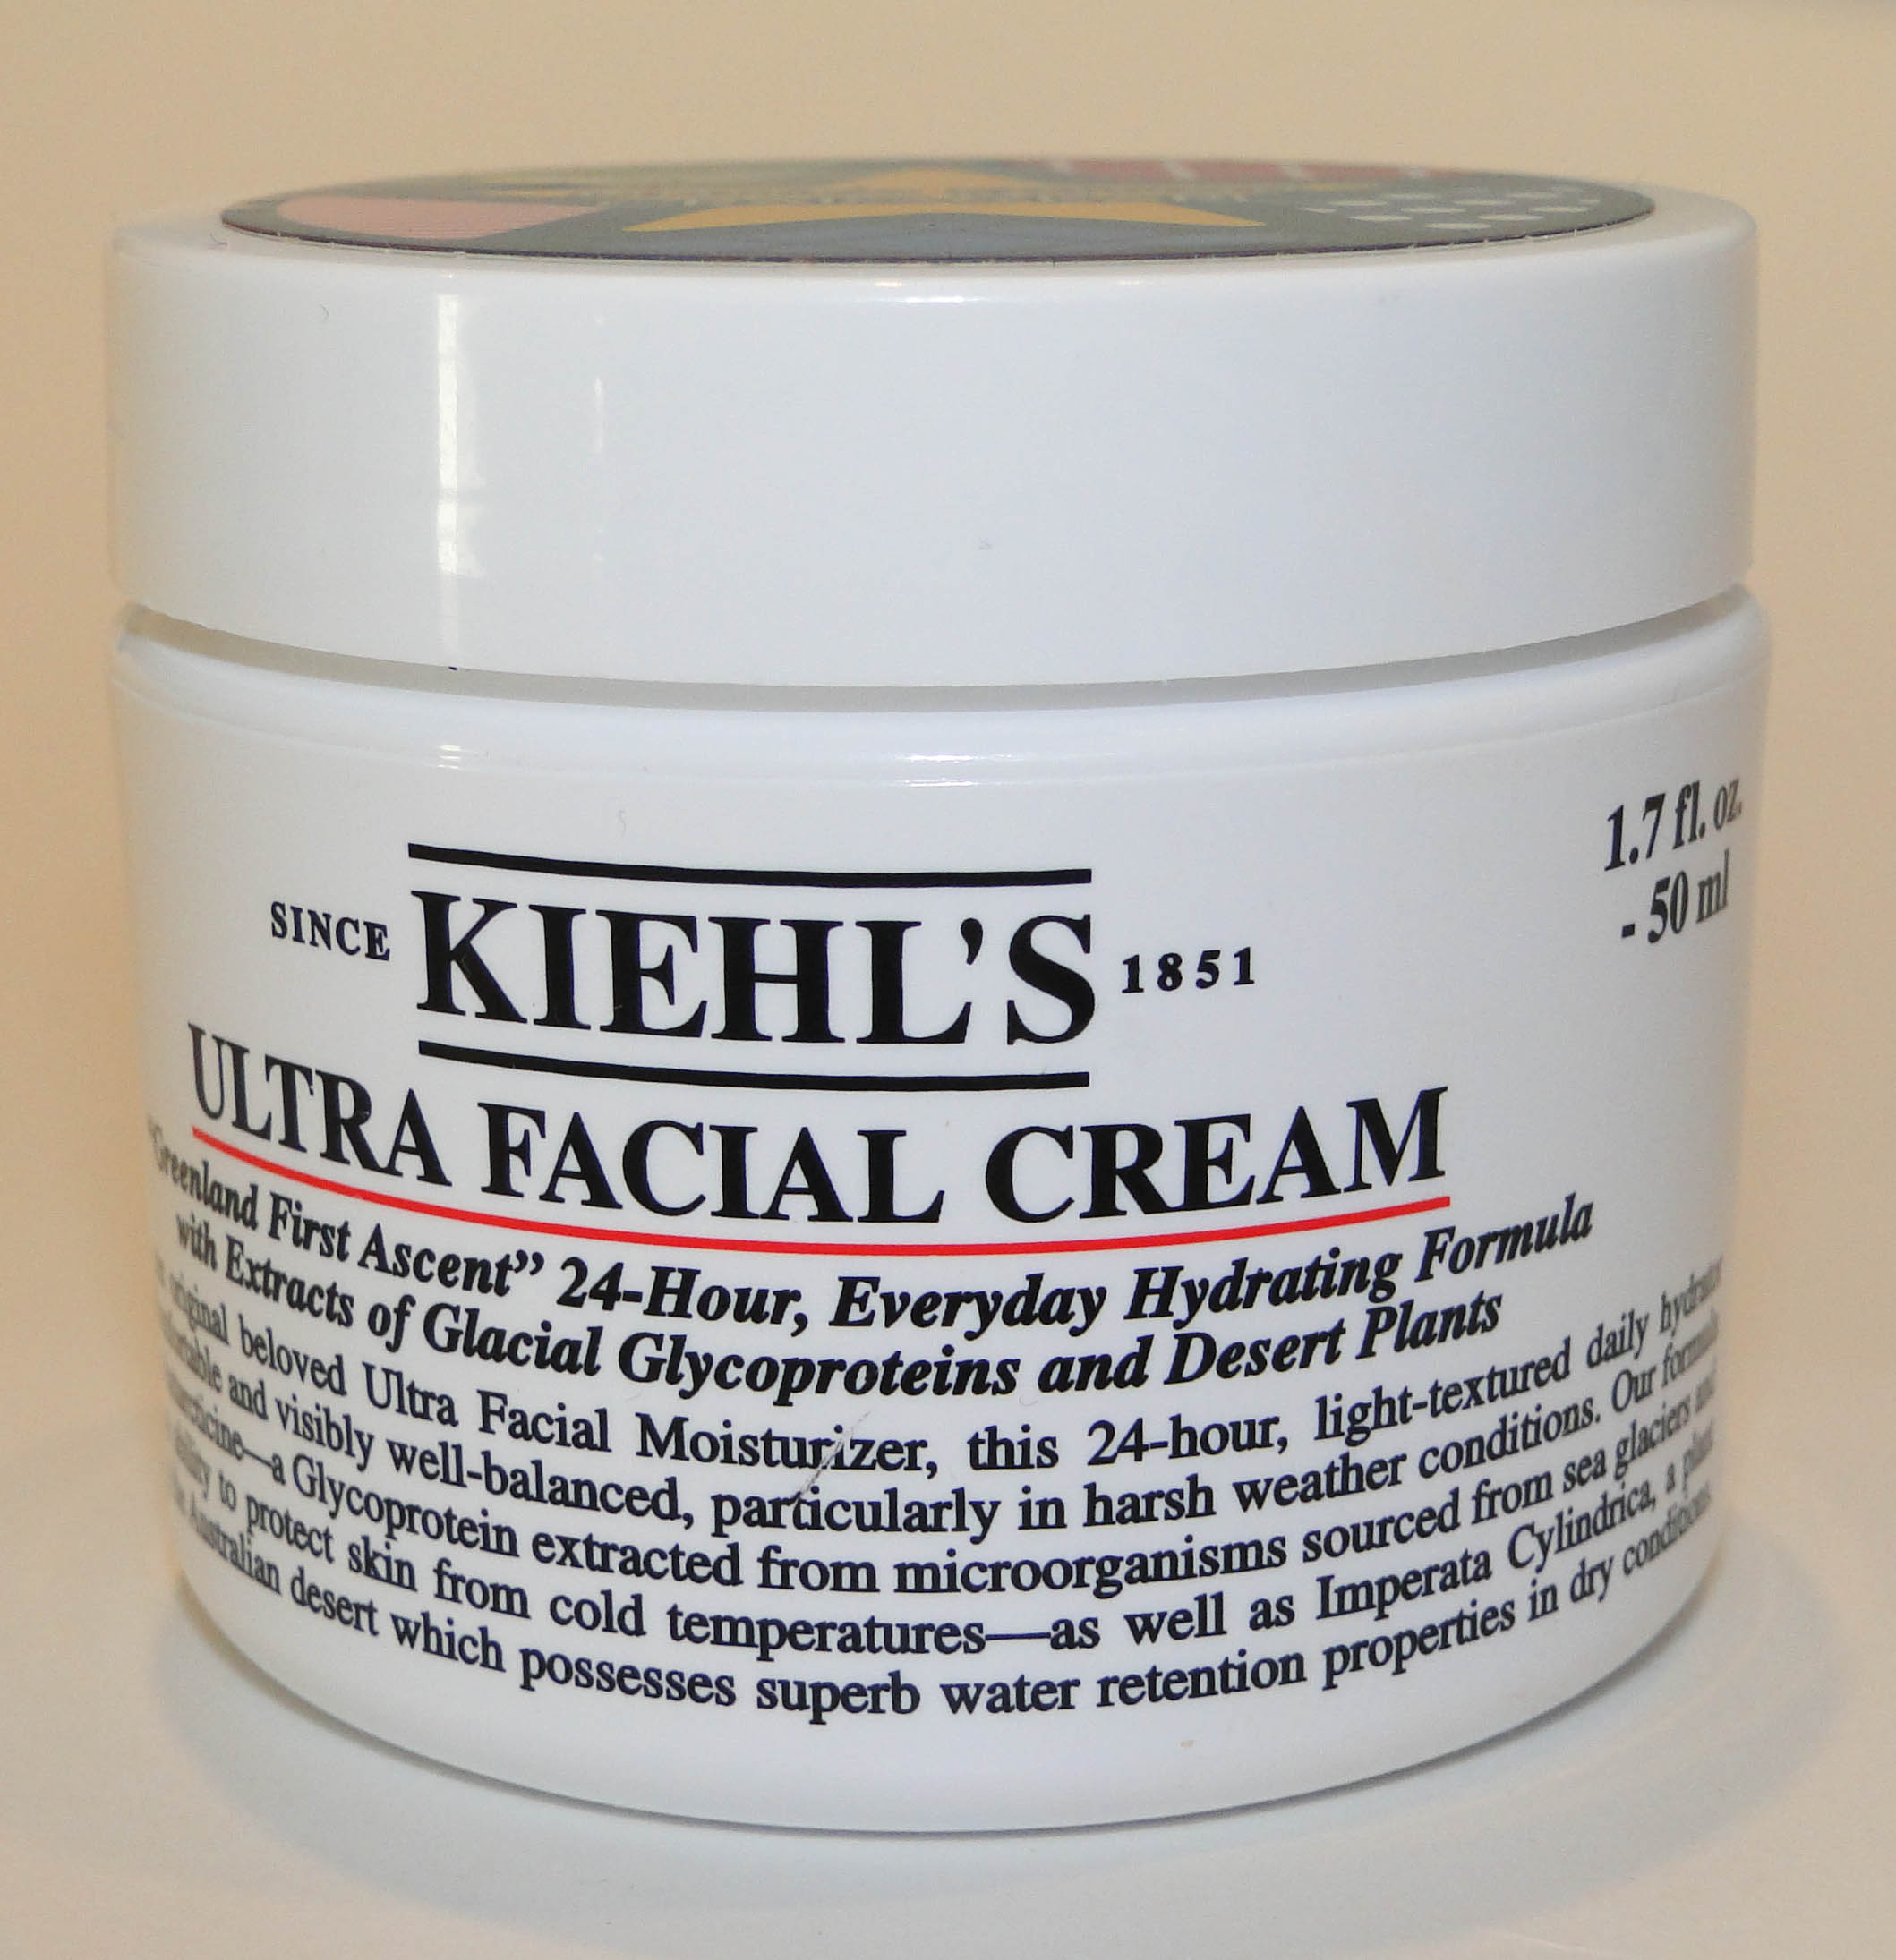 Kiehl's Ultra Facial Cream Craig & Karl